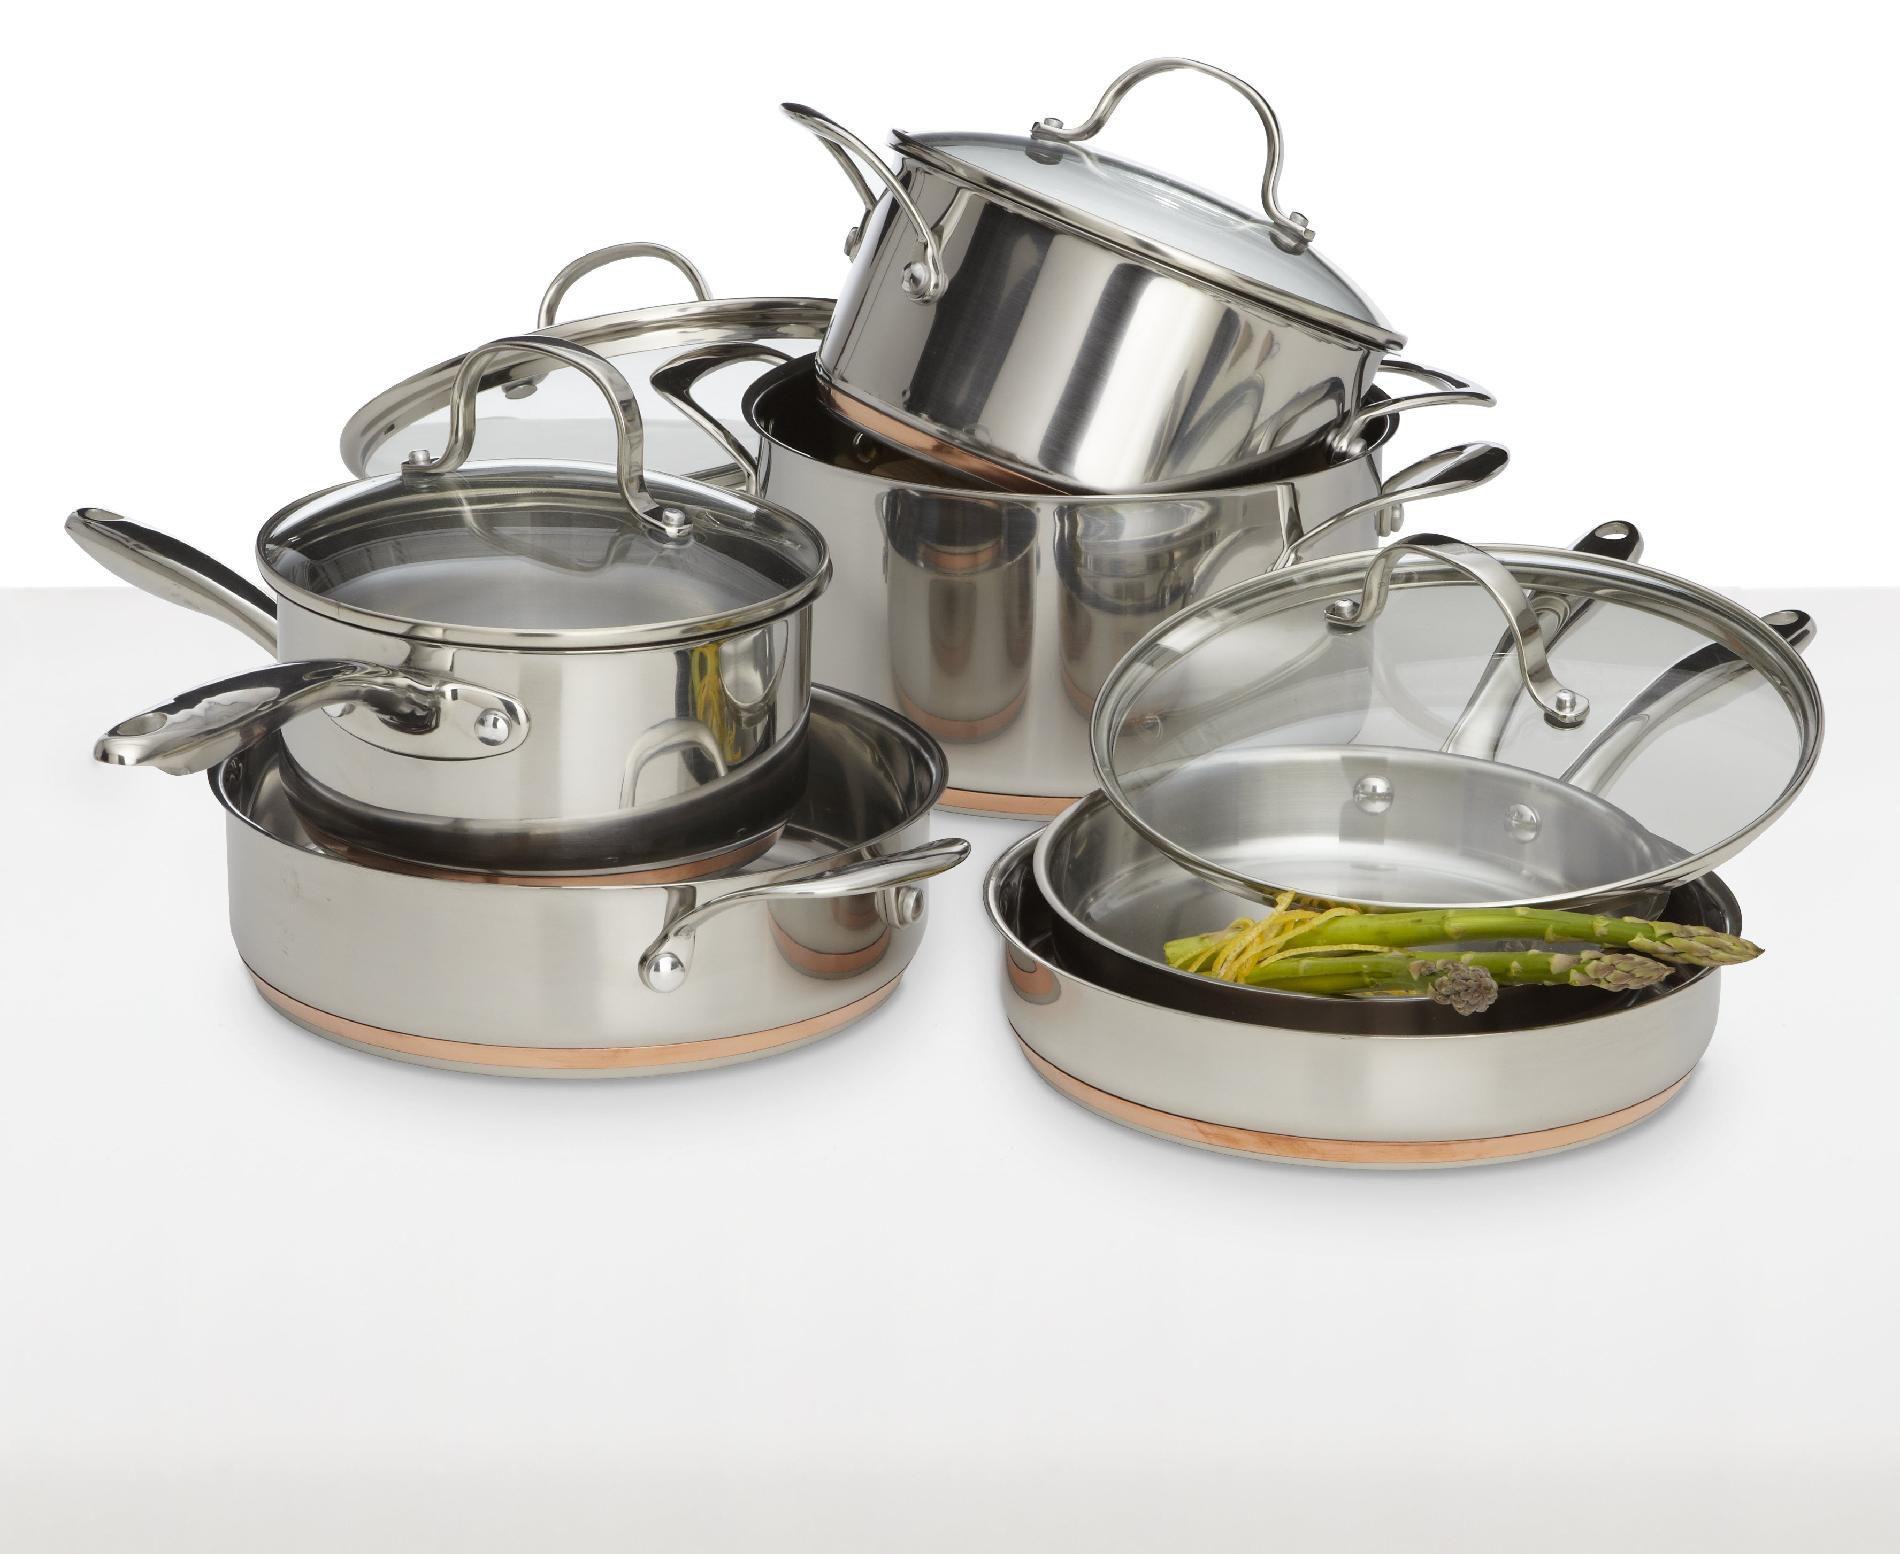 Kenmore 10 pc. Stainless Steel with Copper Band Cookware Set